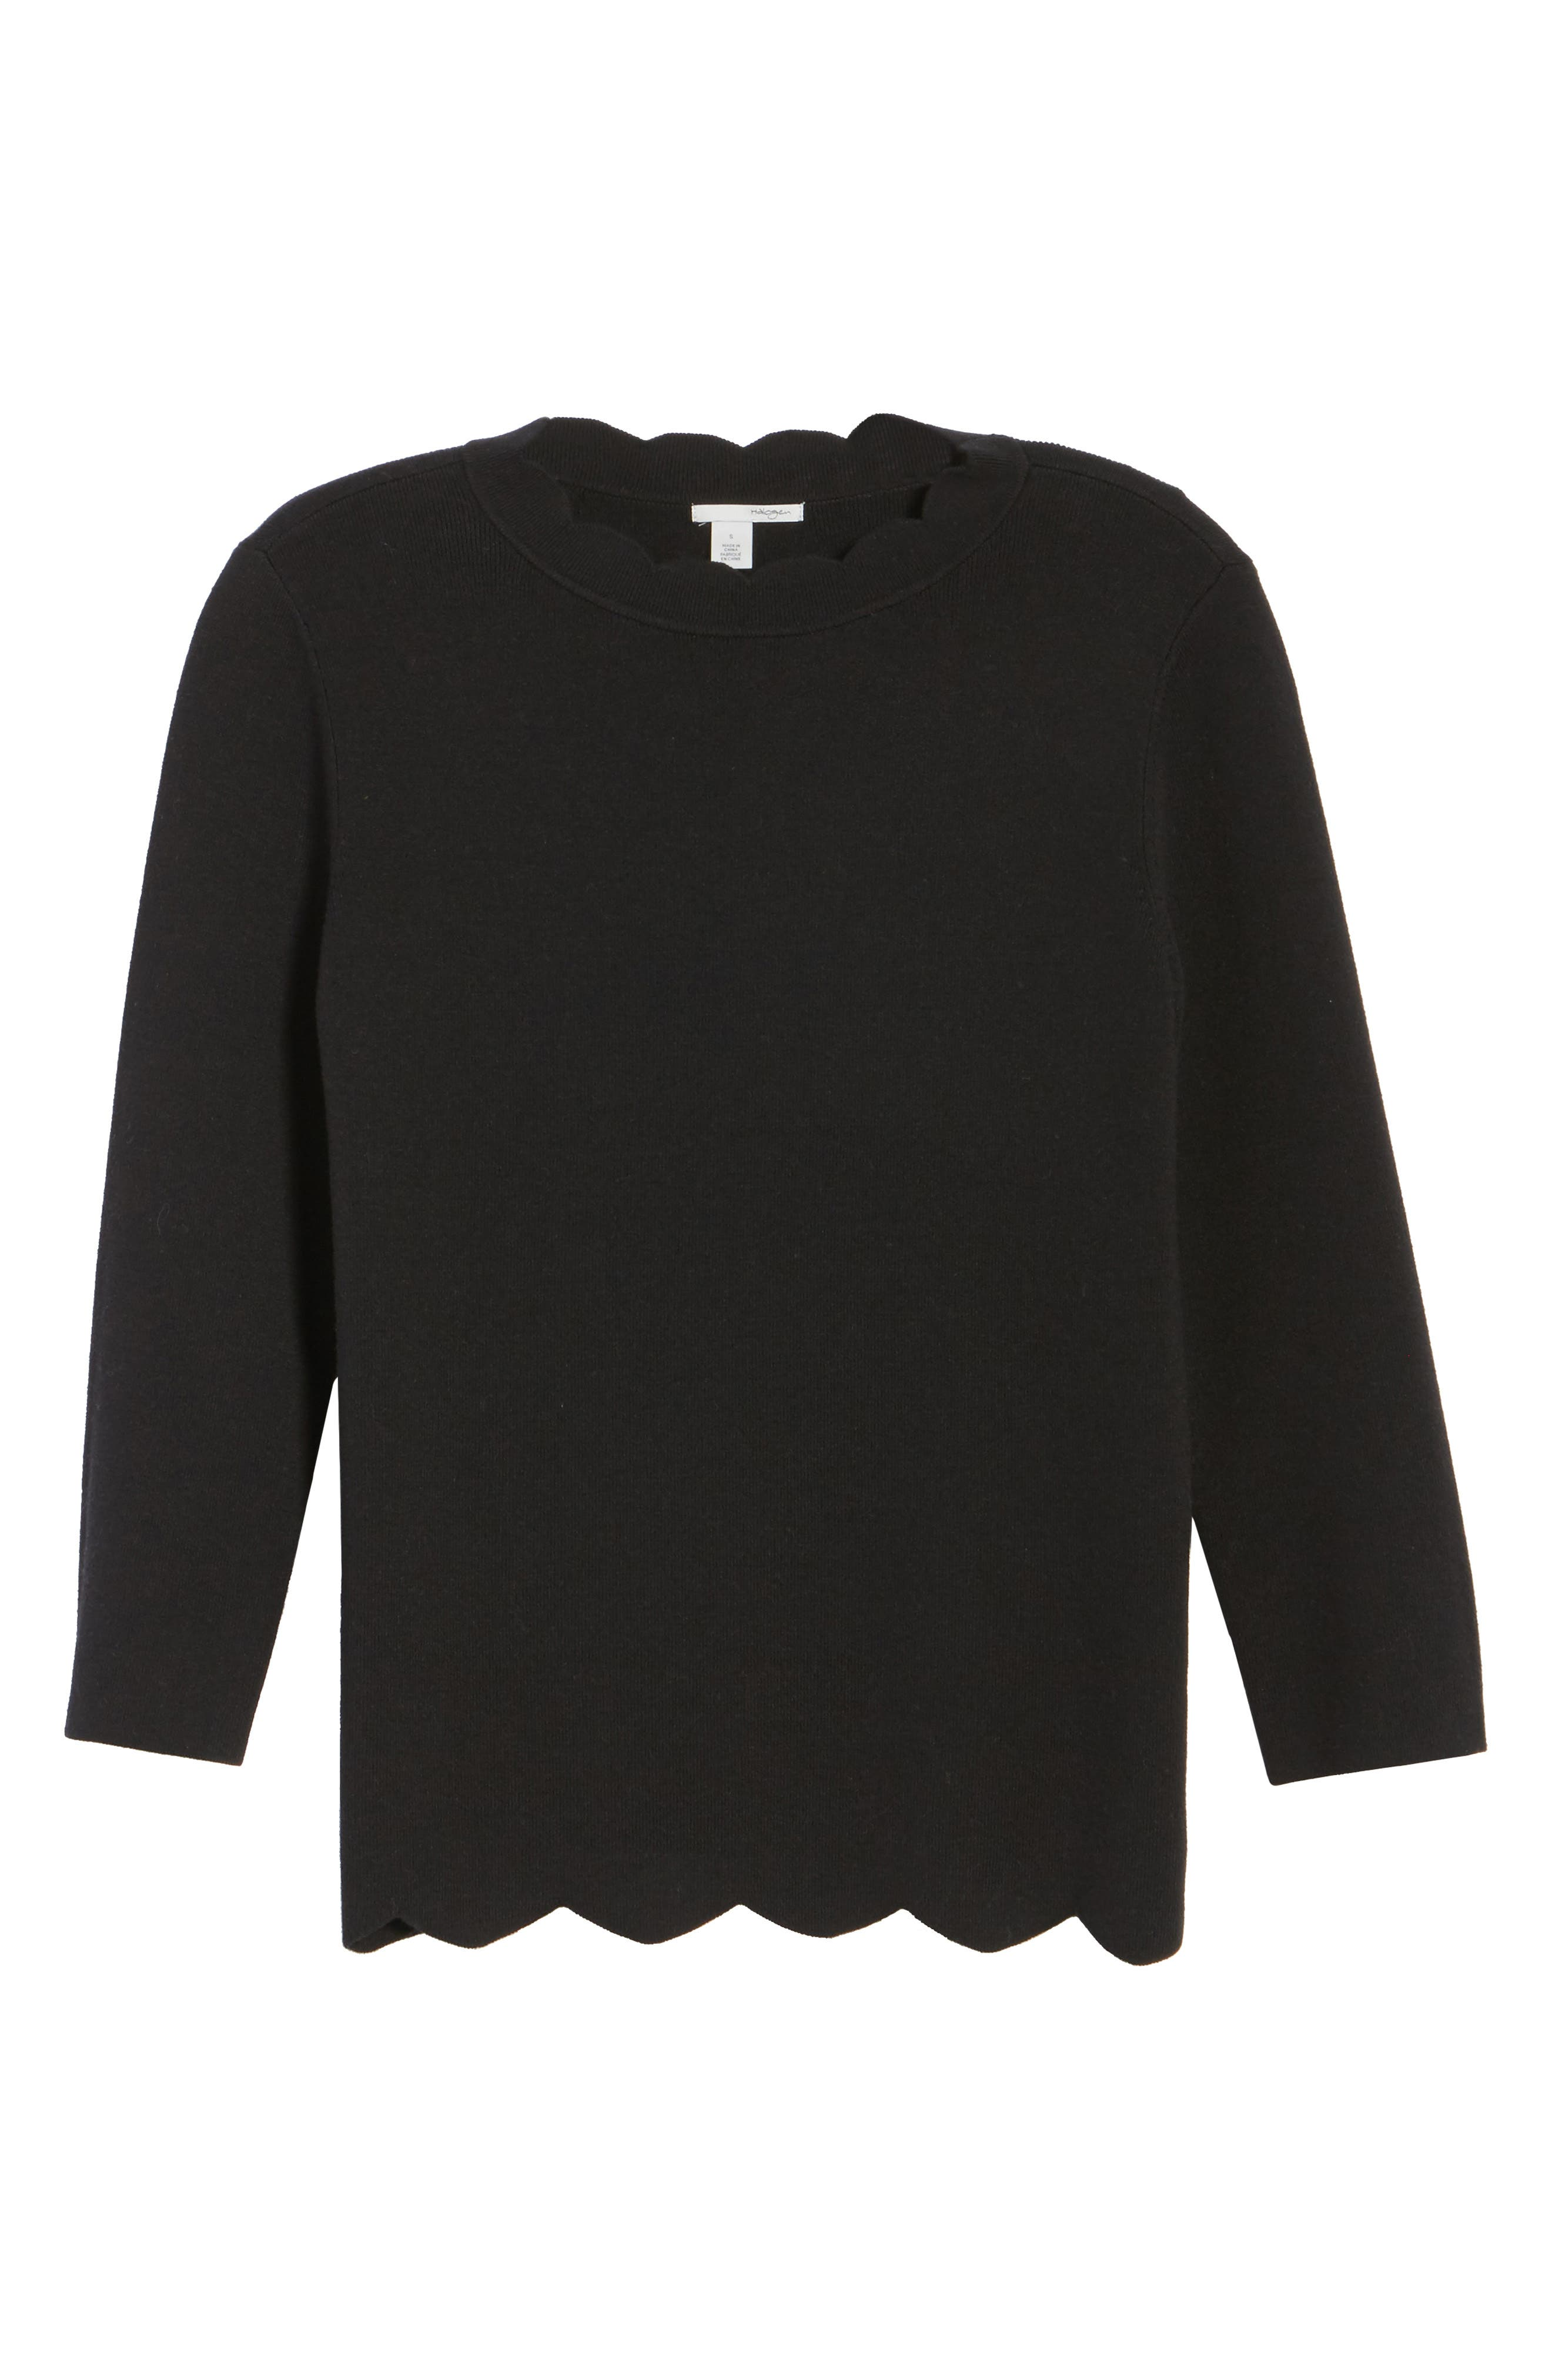 Halogen Scallop Edge Sweater,                             Alternate thumbnail 60, color,